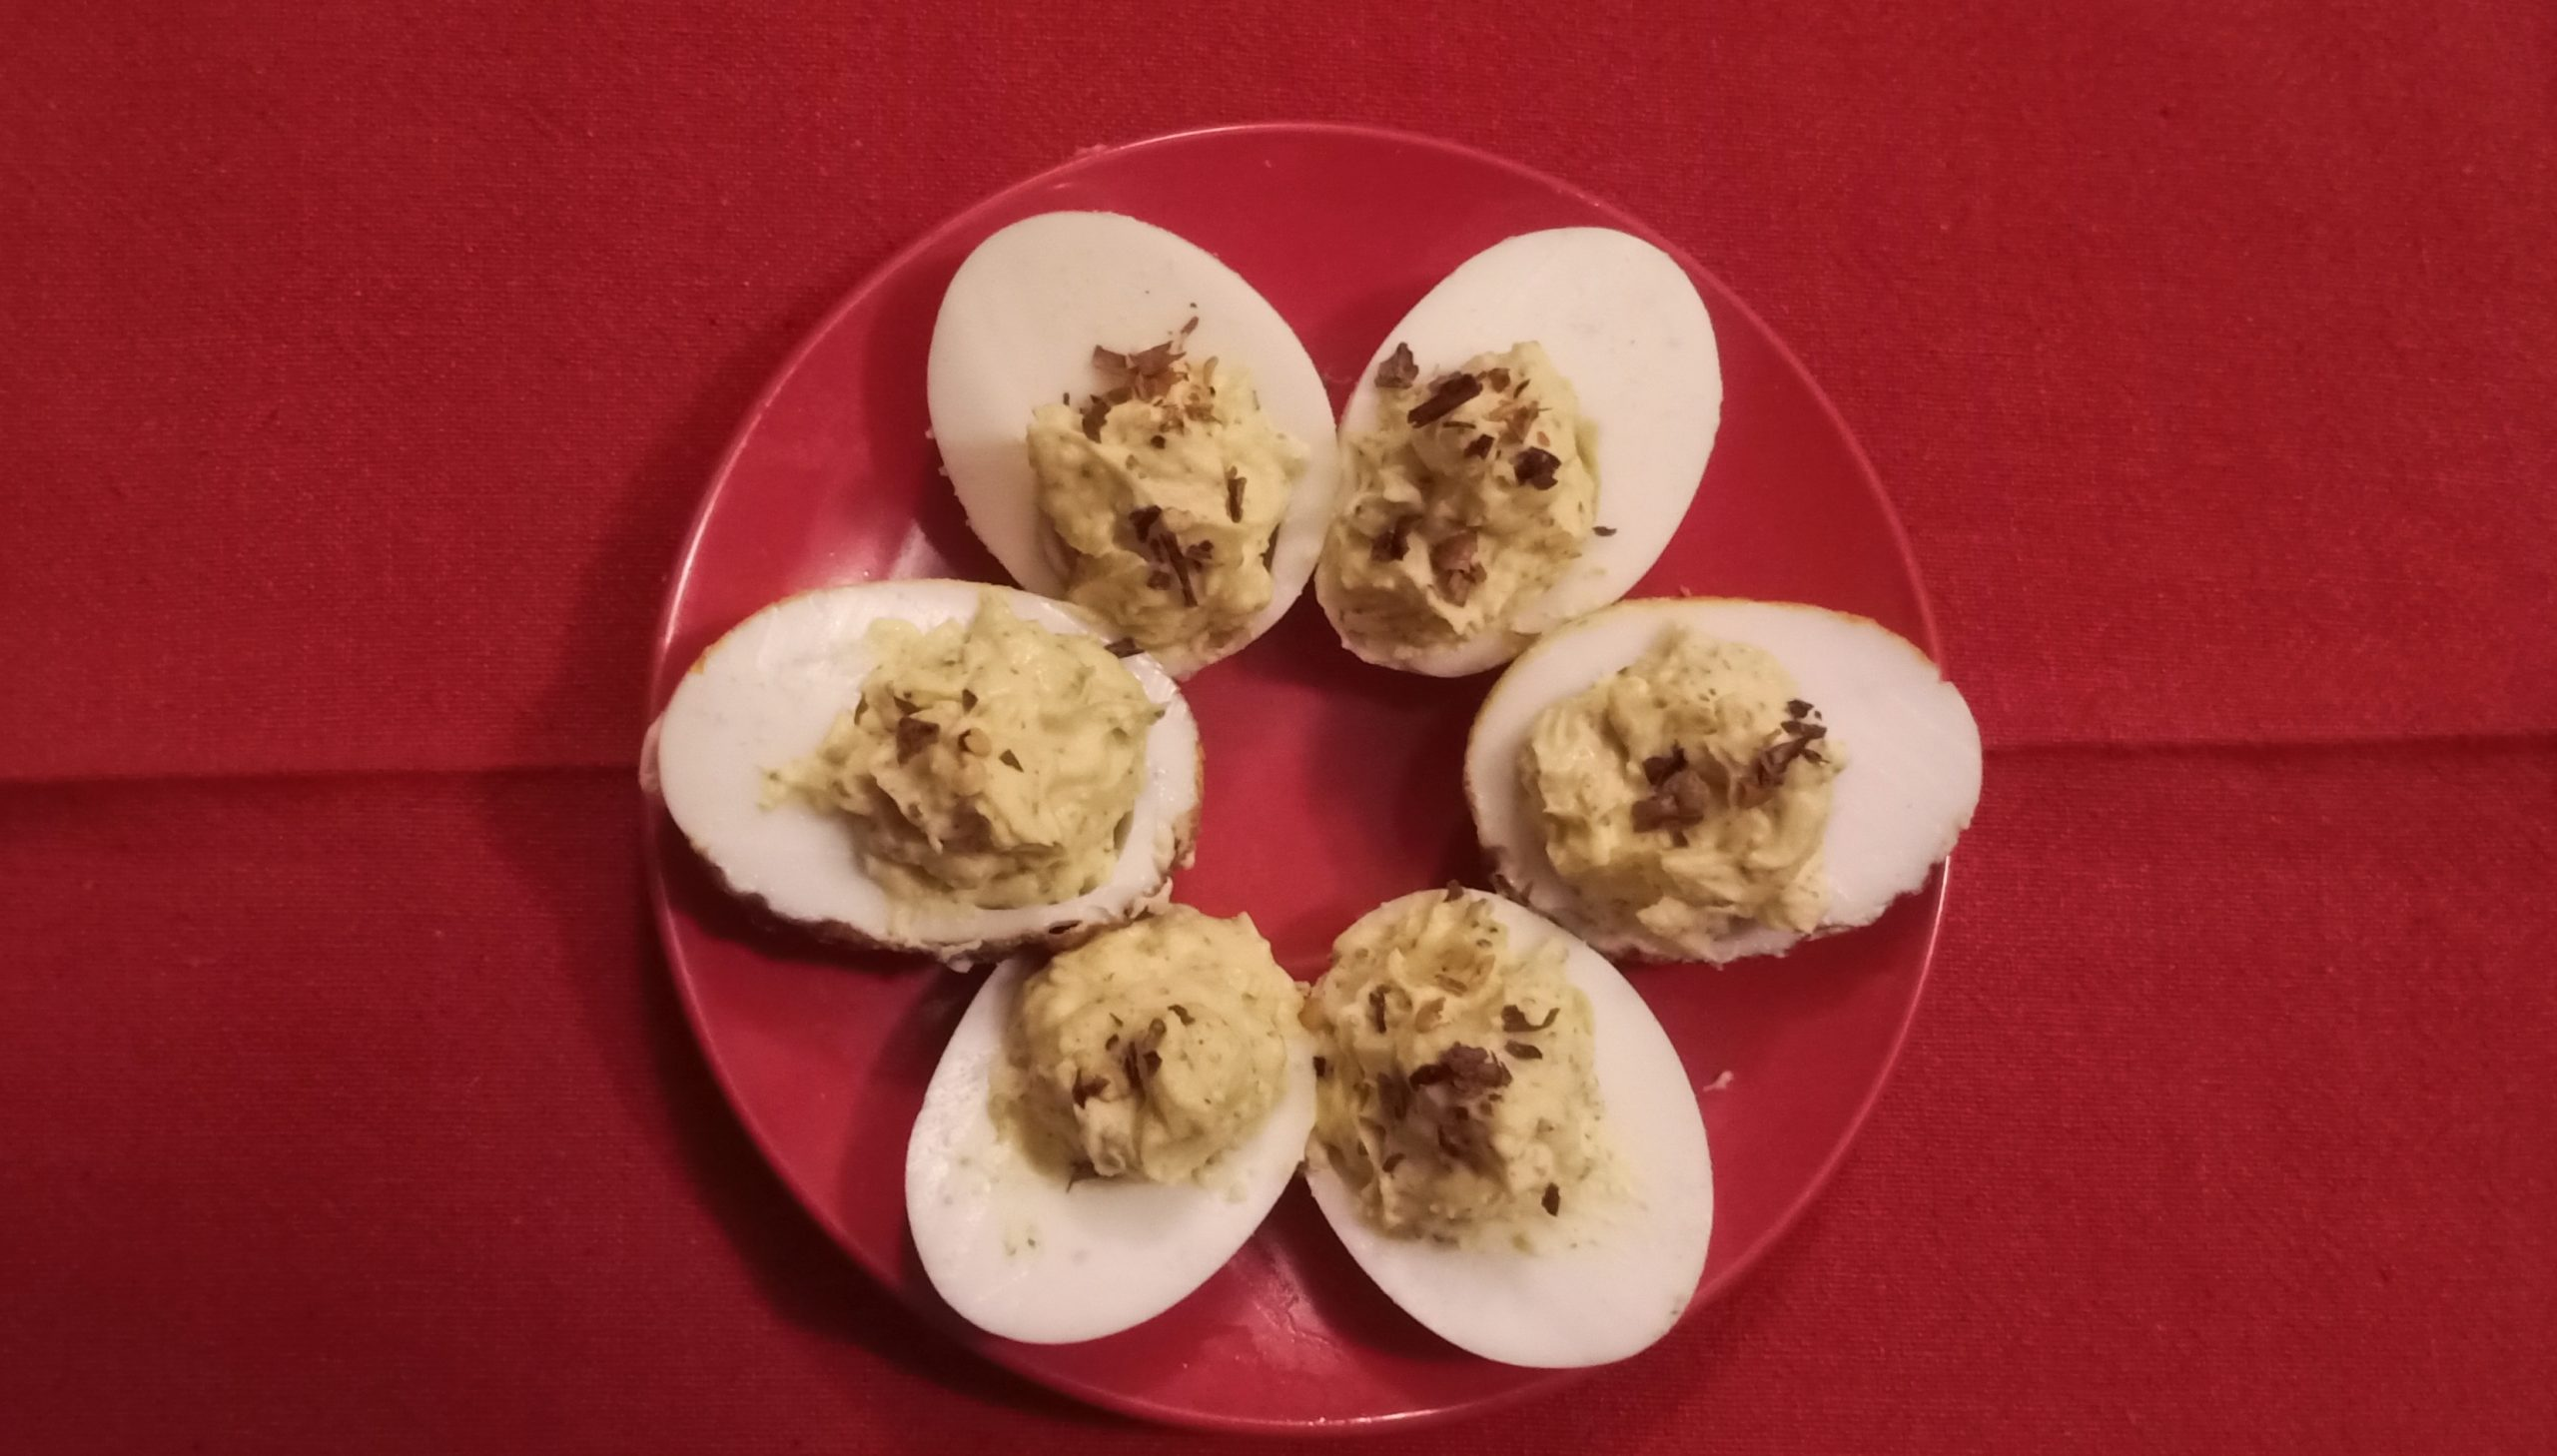 Edible egg pieces in a plate